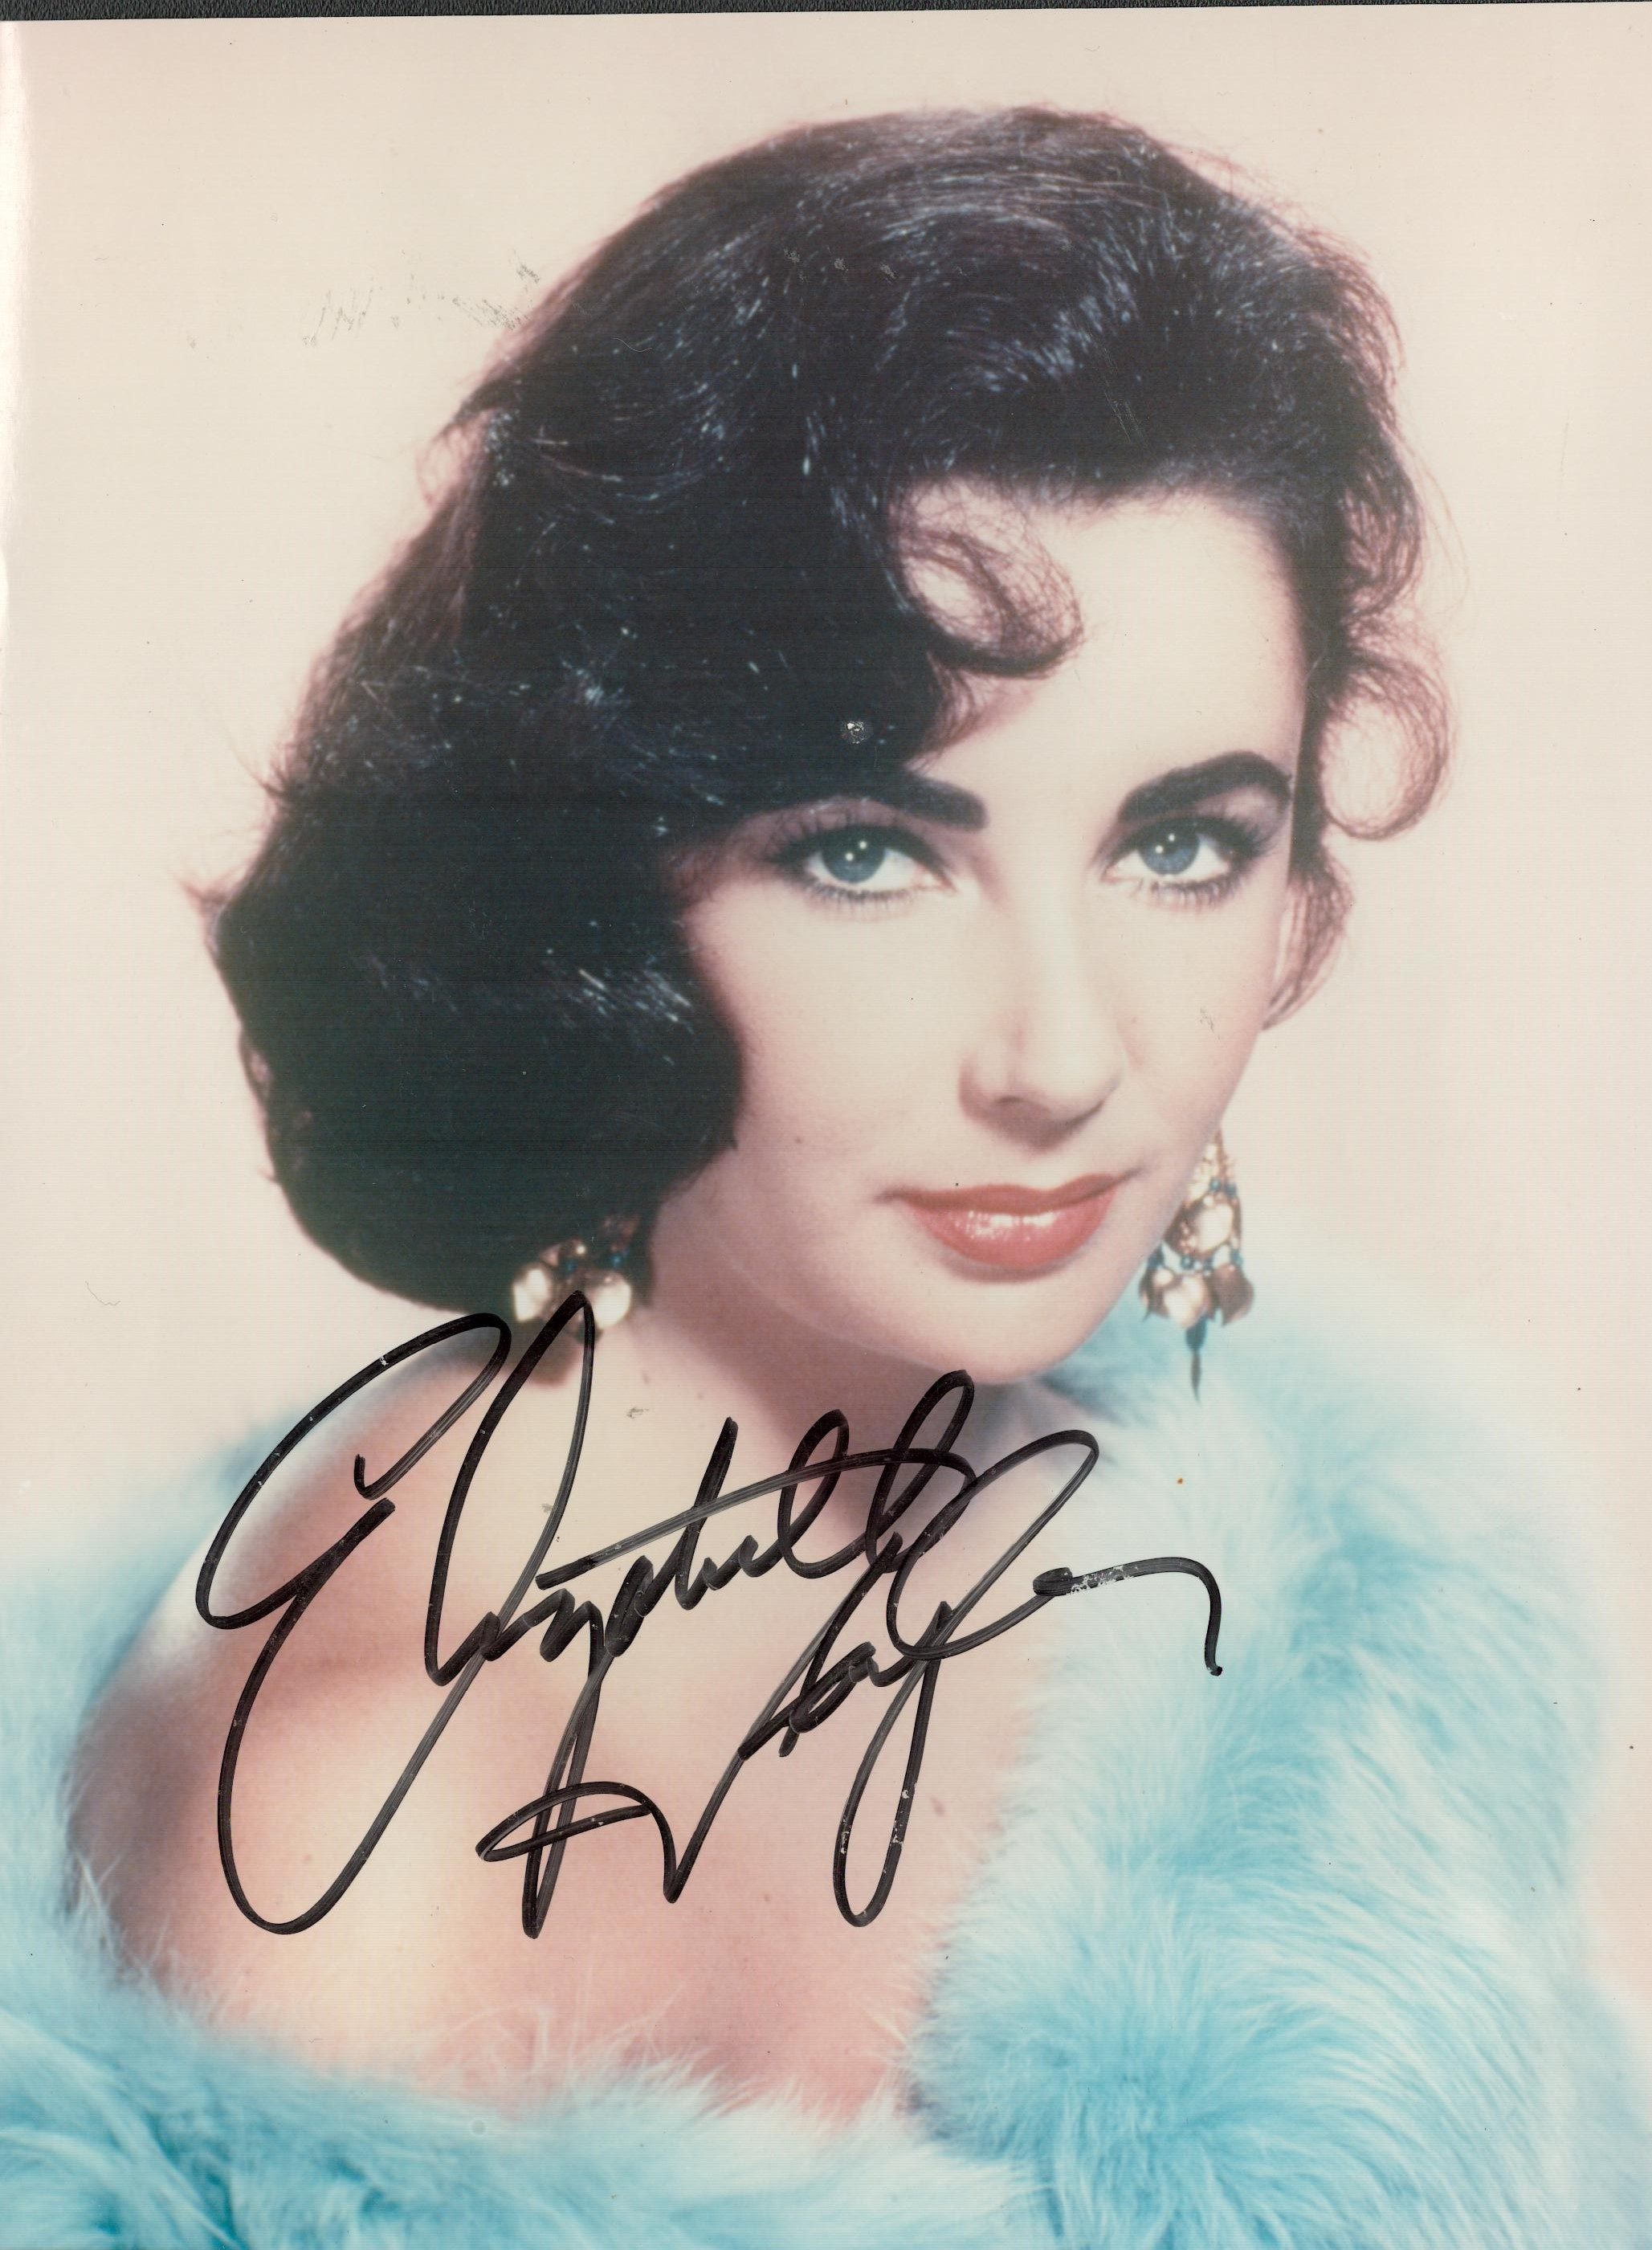 ELIZABETH TAYLOR (1932-2011) Actress signed 8x10 Photo . Good condition. All autographs come with